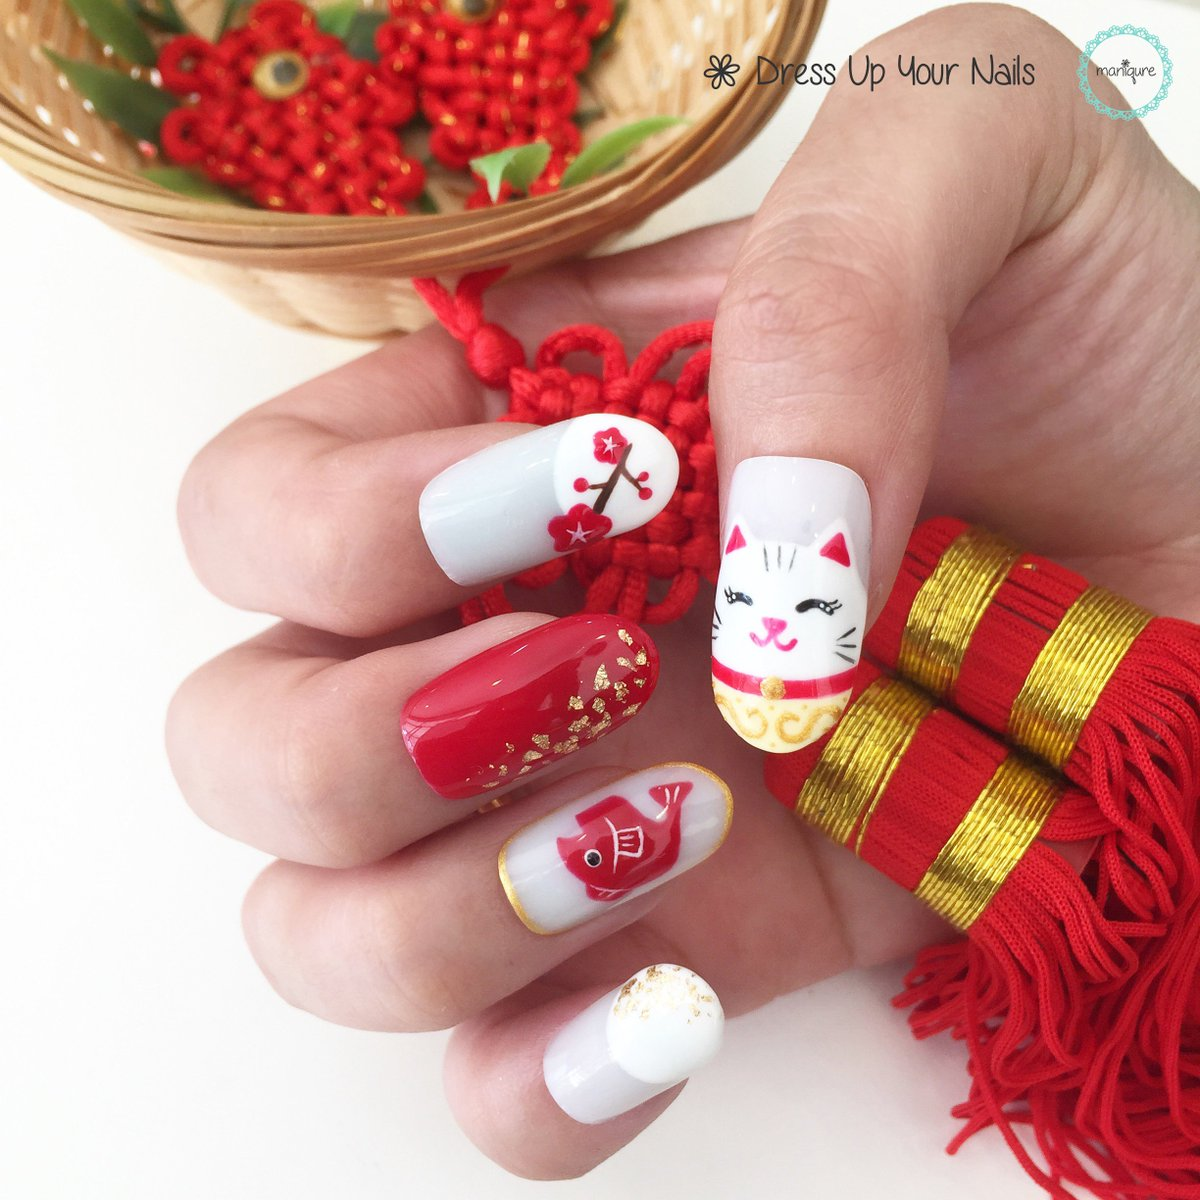 Maniqure Nail Salon On Twitter Chinese New Year Appointment Slots Are Now Open For Booking Valid Until 27 Jan 2017 T C Apply